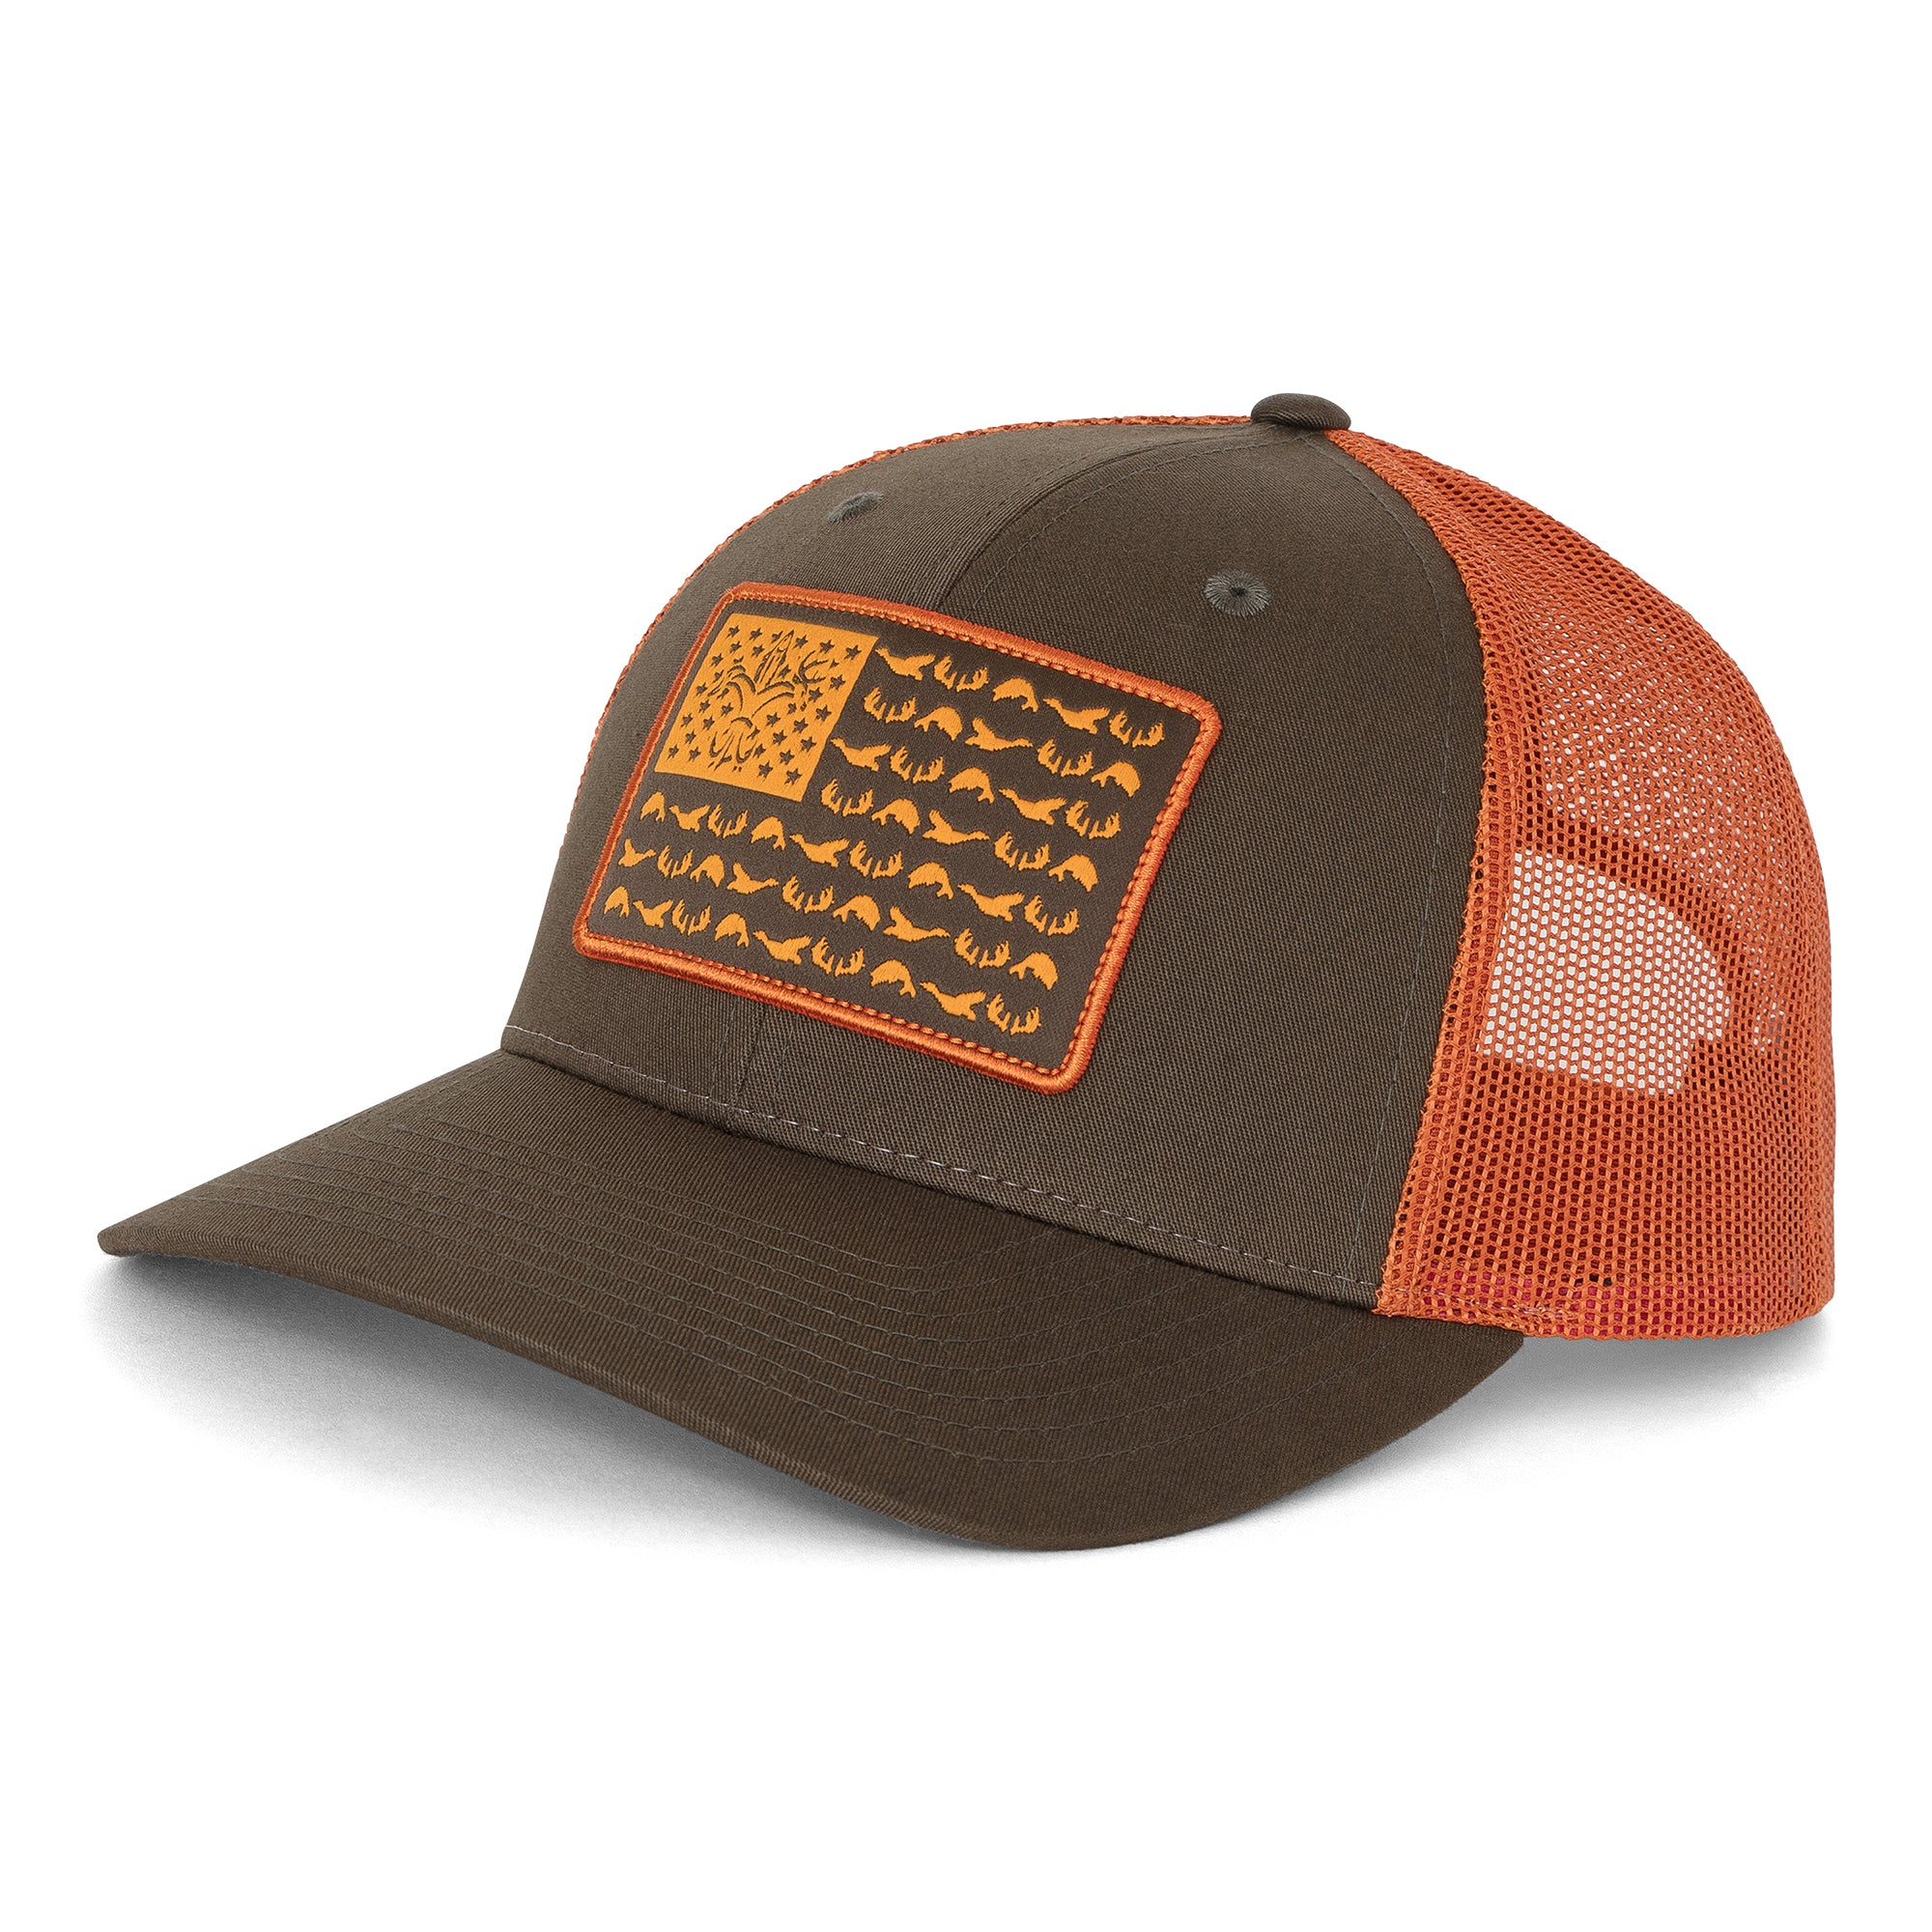 05b4c9320 American Sportsman Mesh Back Hat - Dark Loden / Jaffa Orange